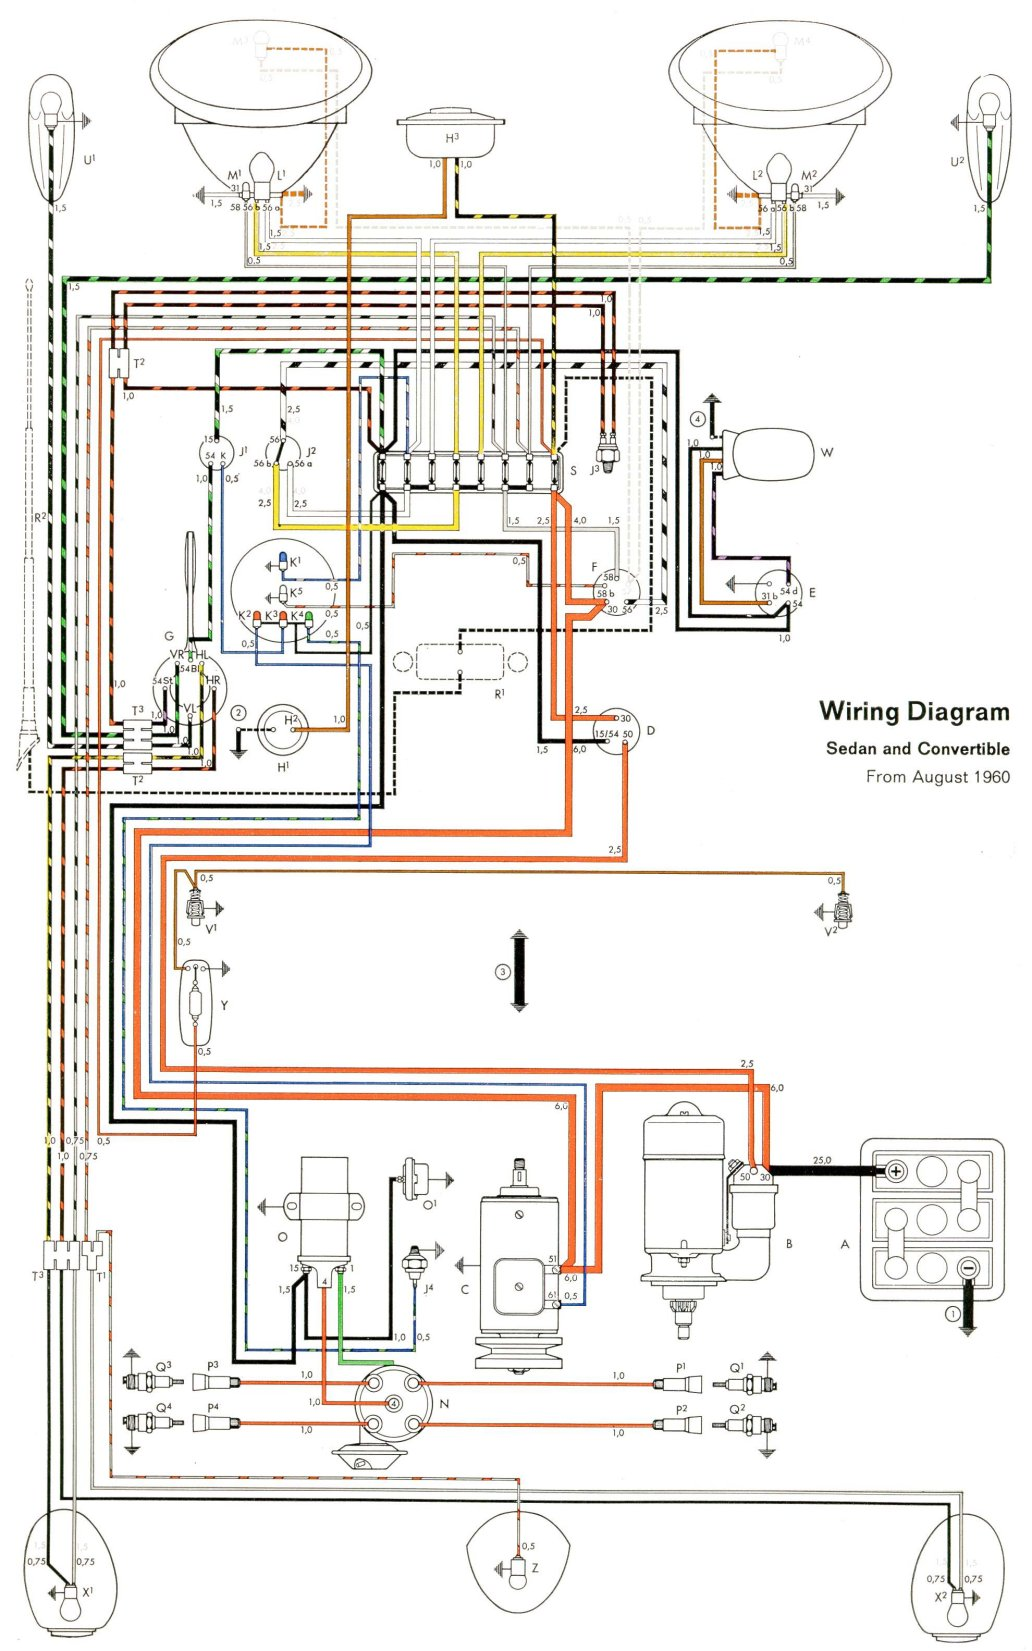 thesamba com type 1 wiring diagrams rh thesamba com 1968 vw wiring diagram 1968 vw wiring for towing